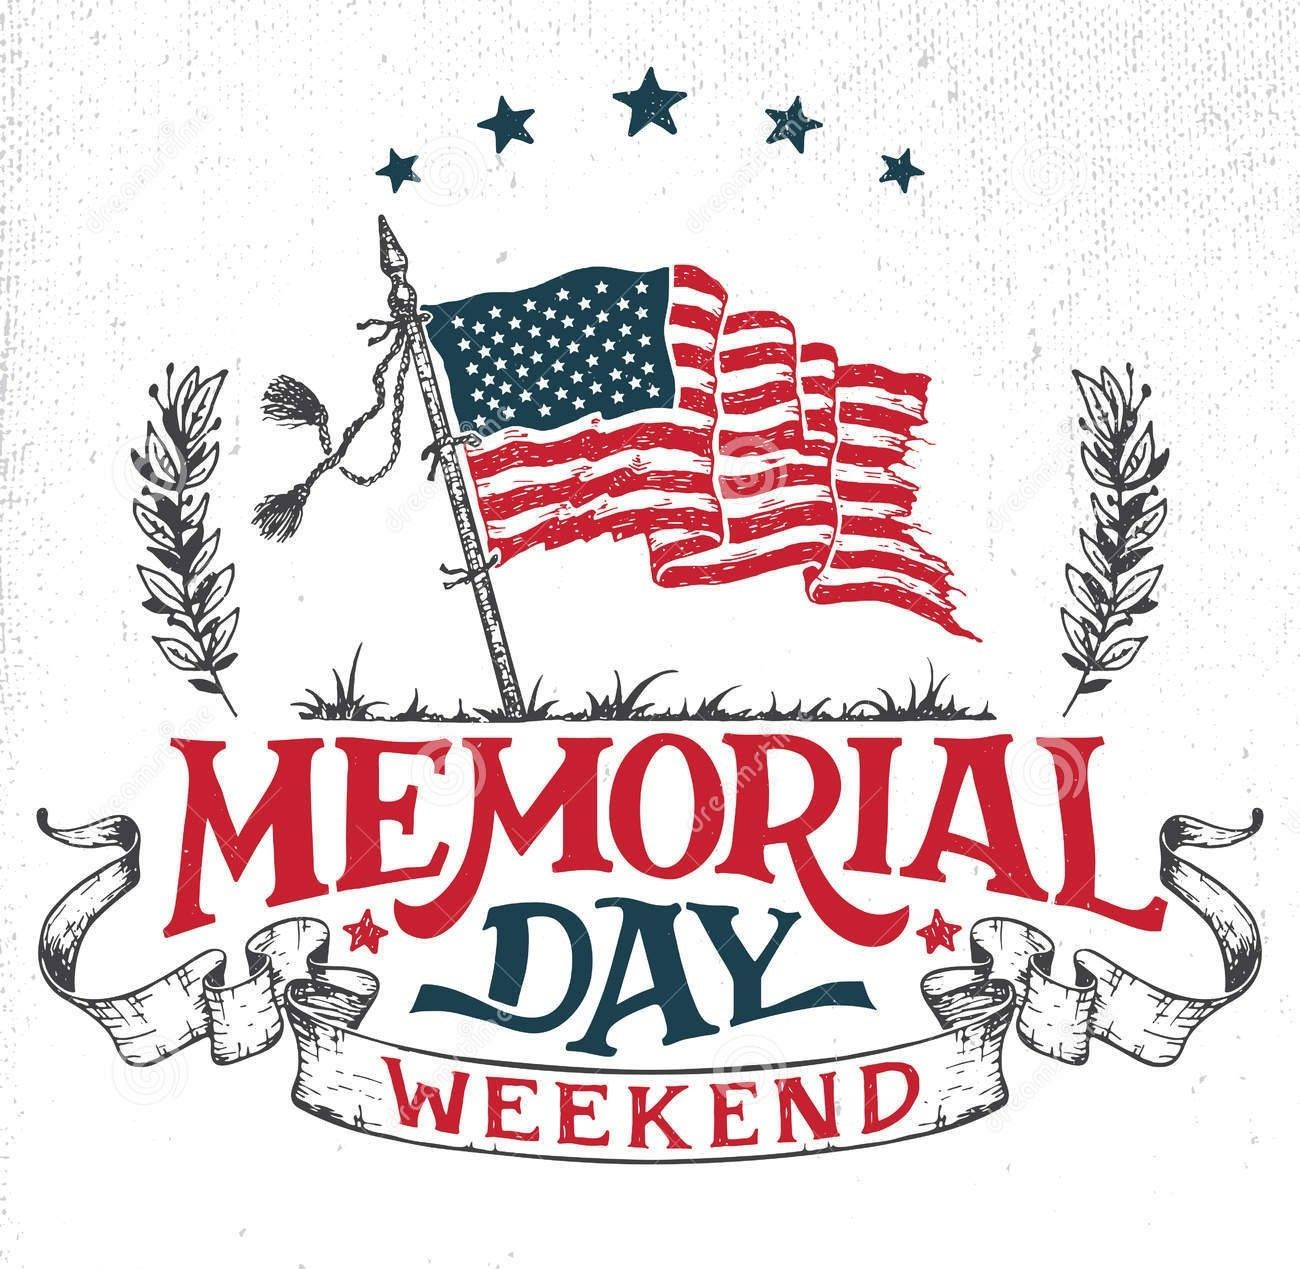 Have a safe & happy Memorial Day! #alfredscarpet #shoplocal